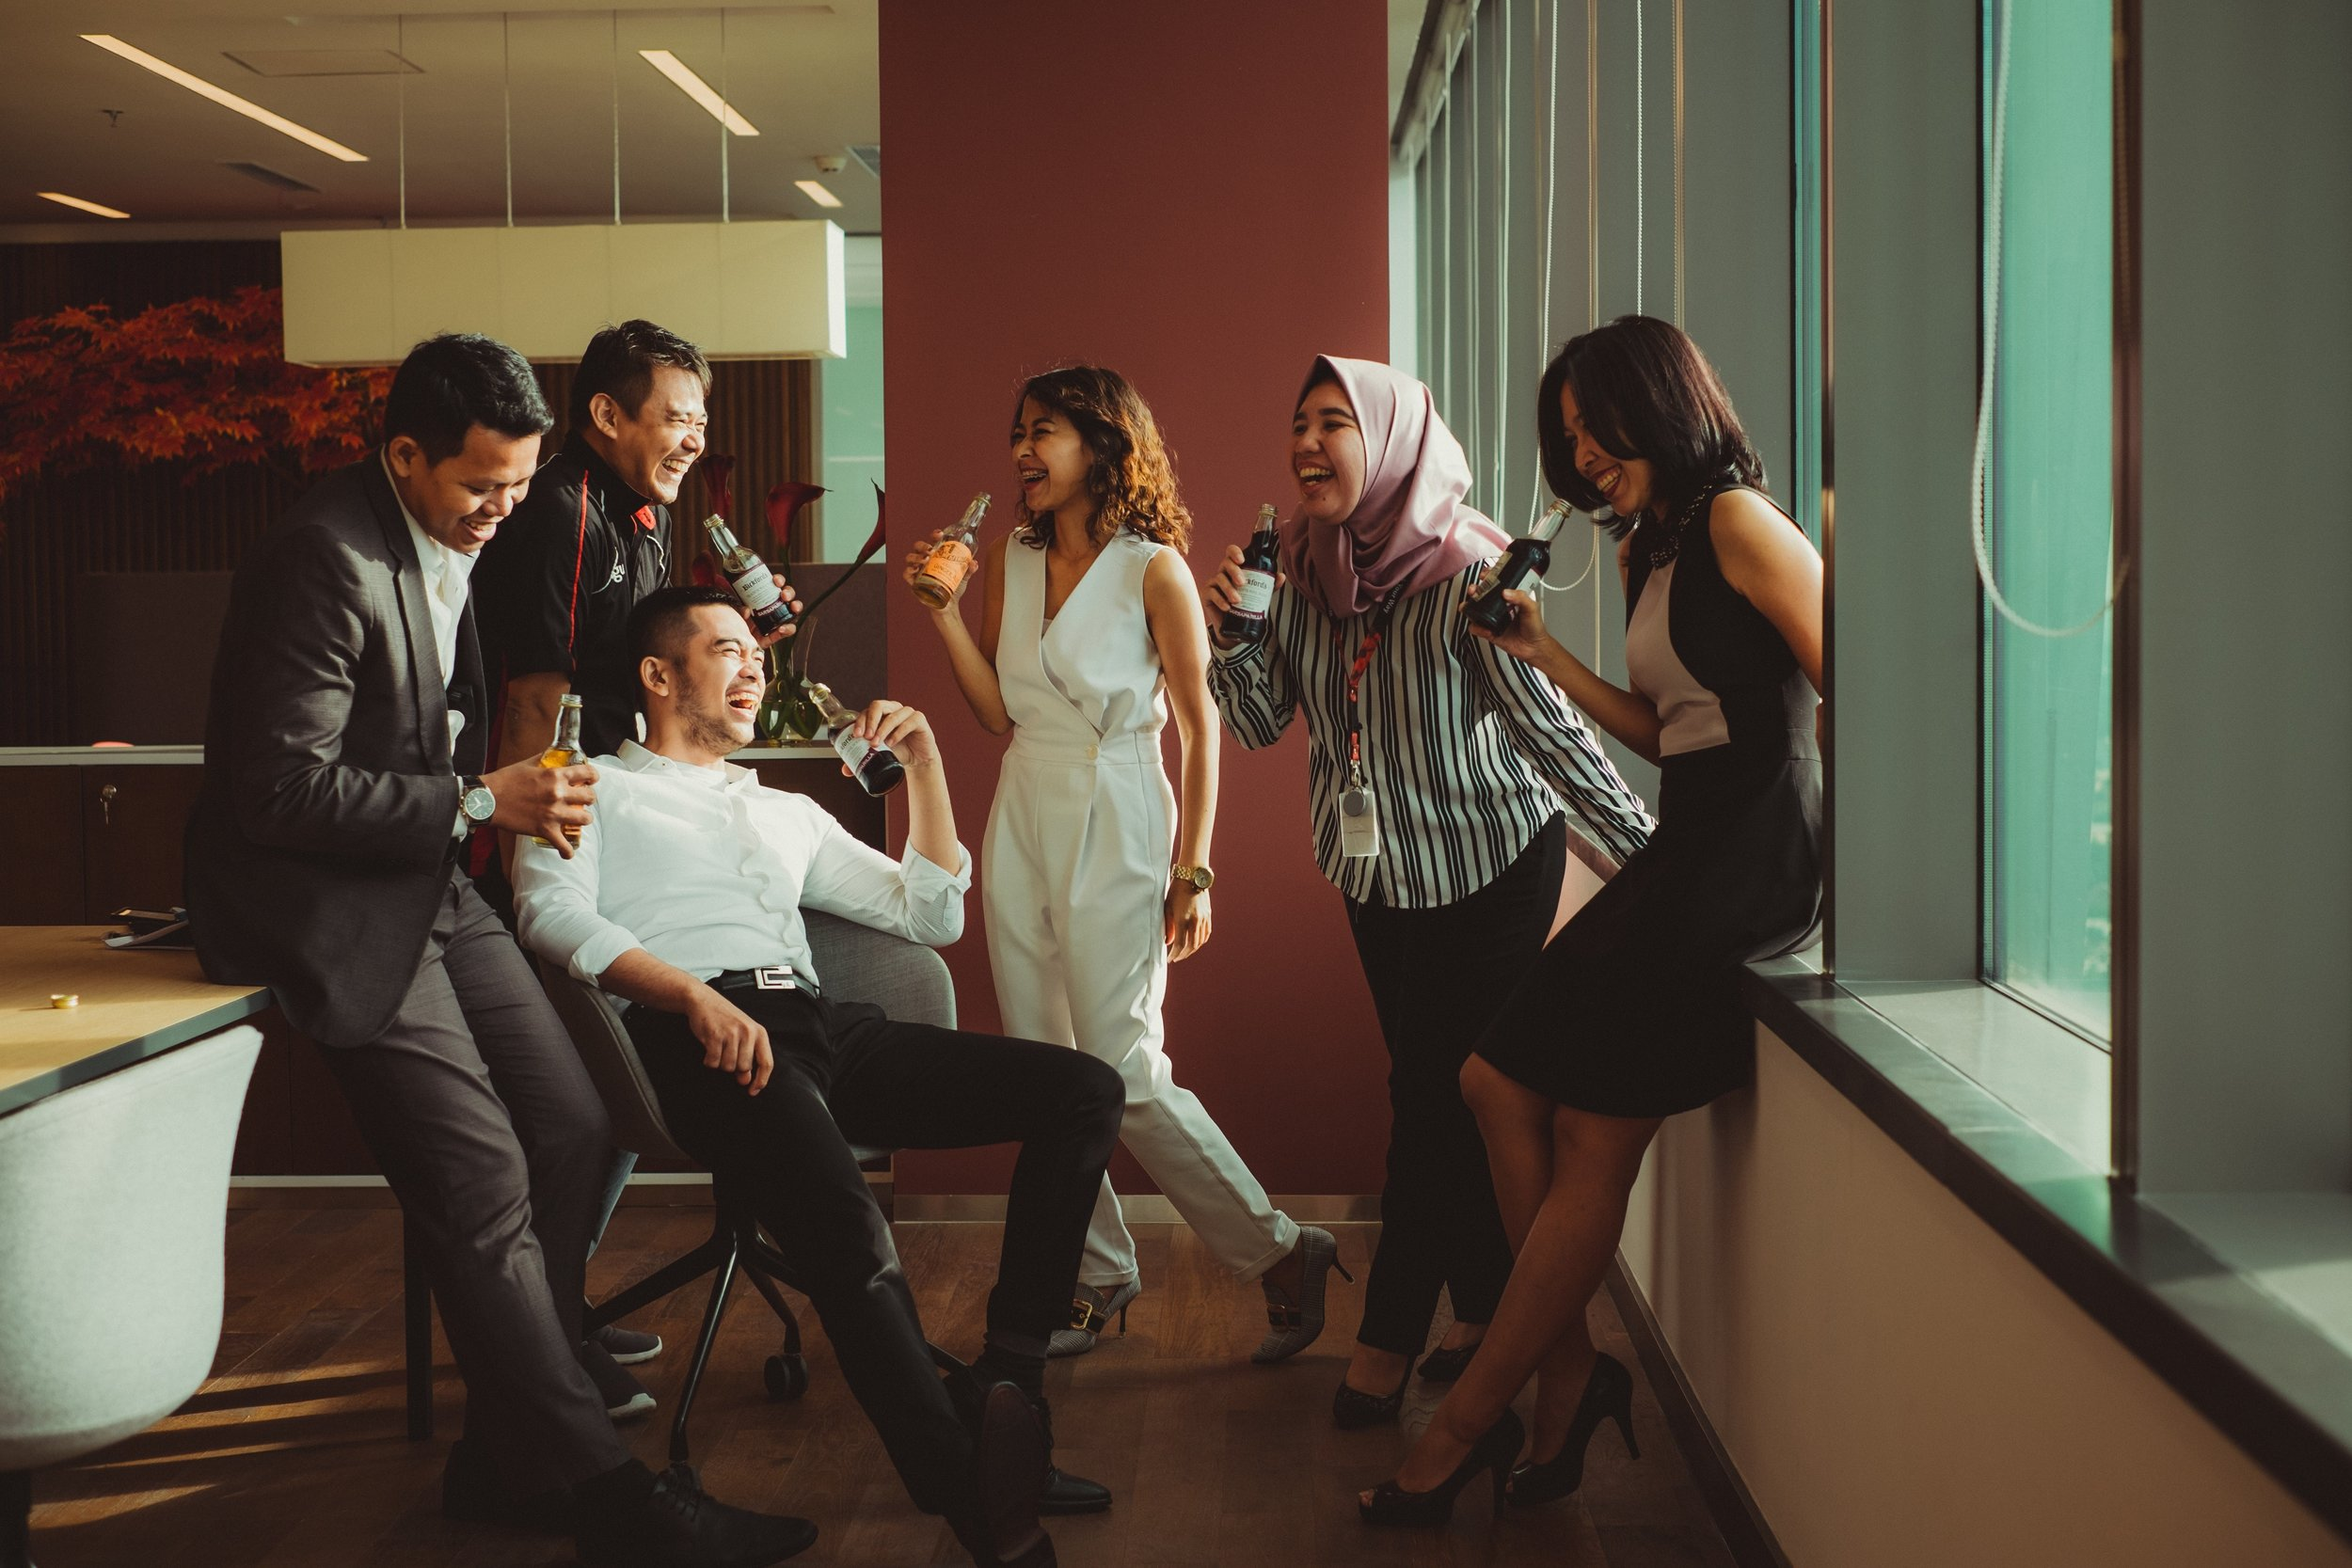 Happy Coworkers by Ali Yahya on Unsplash